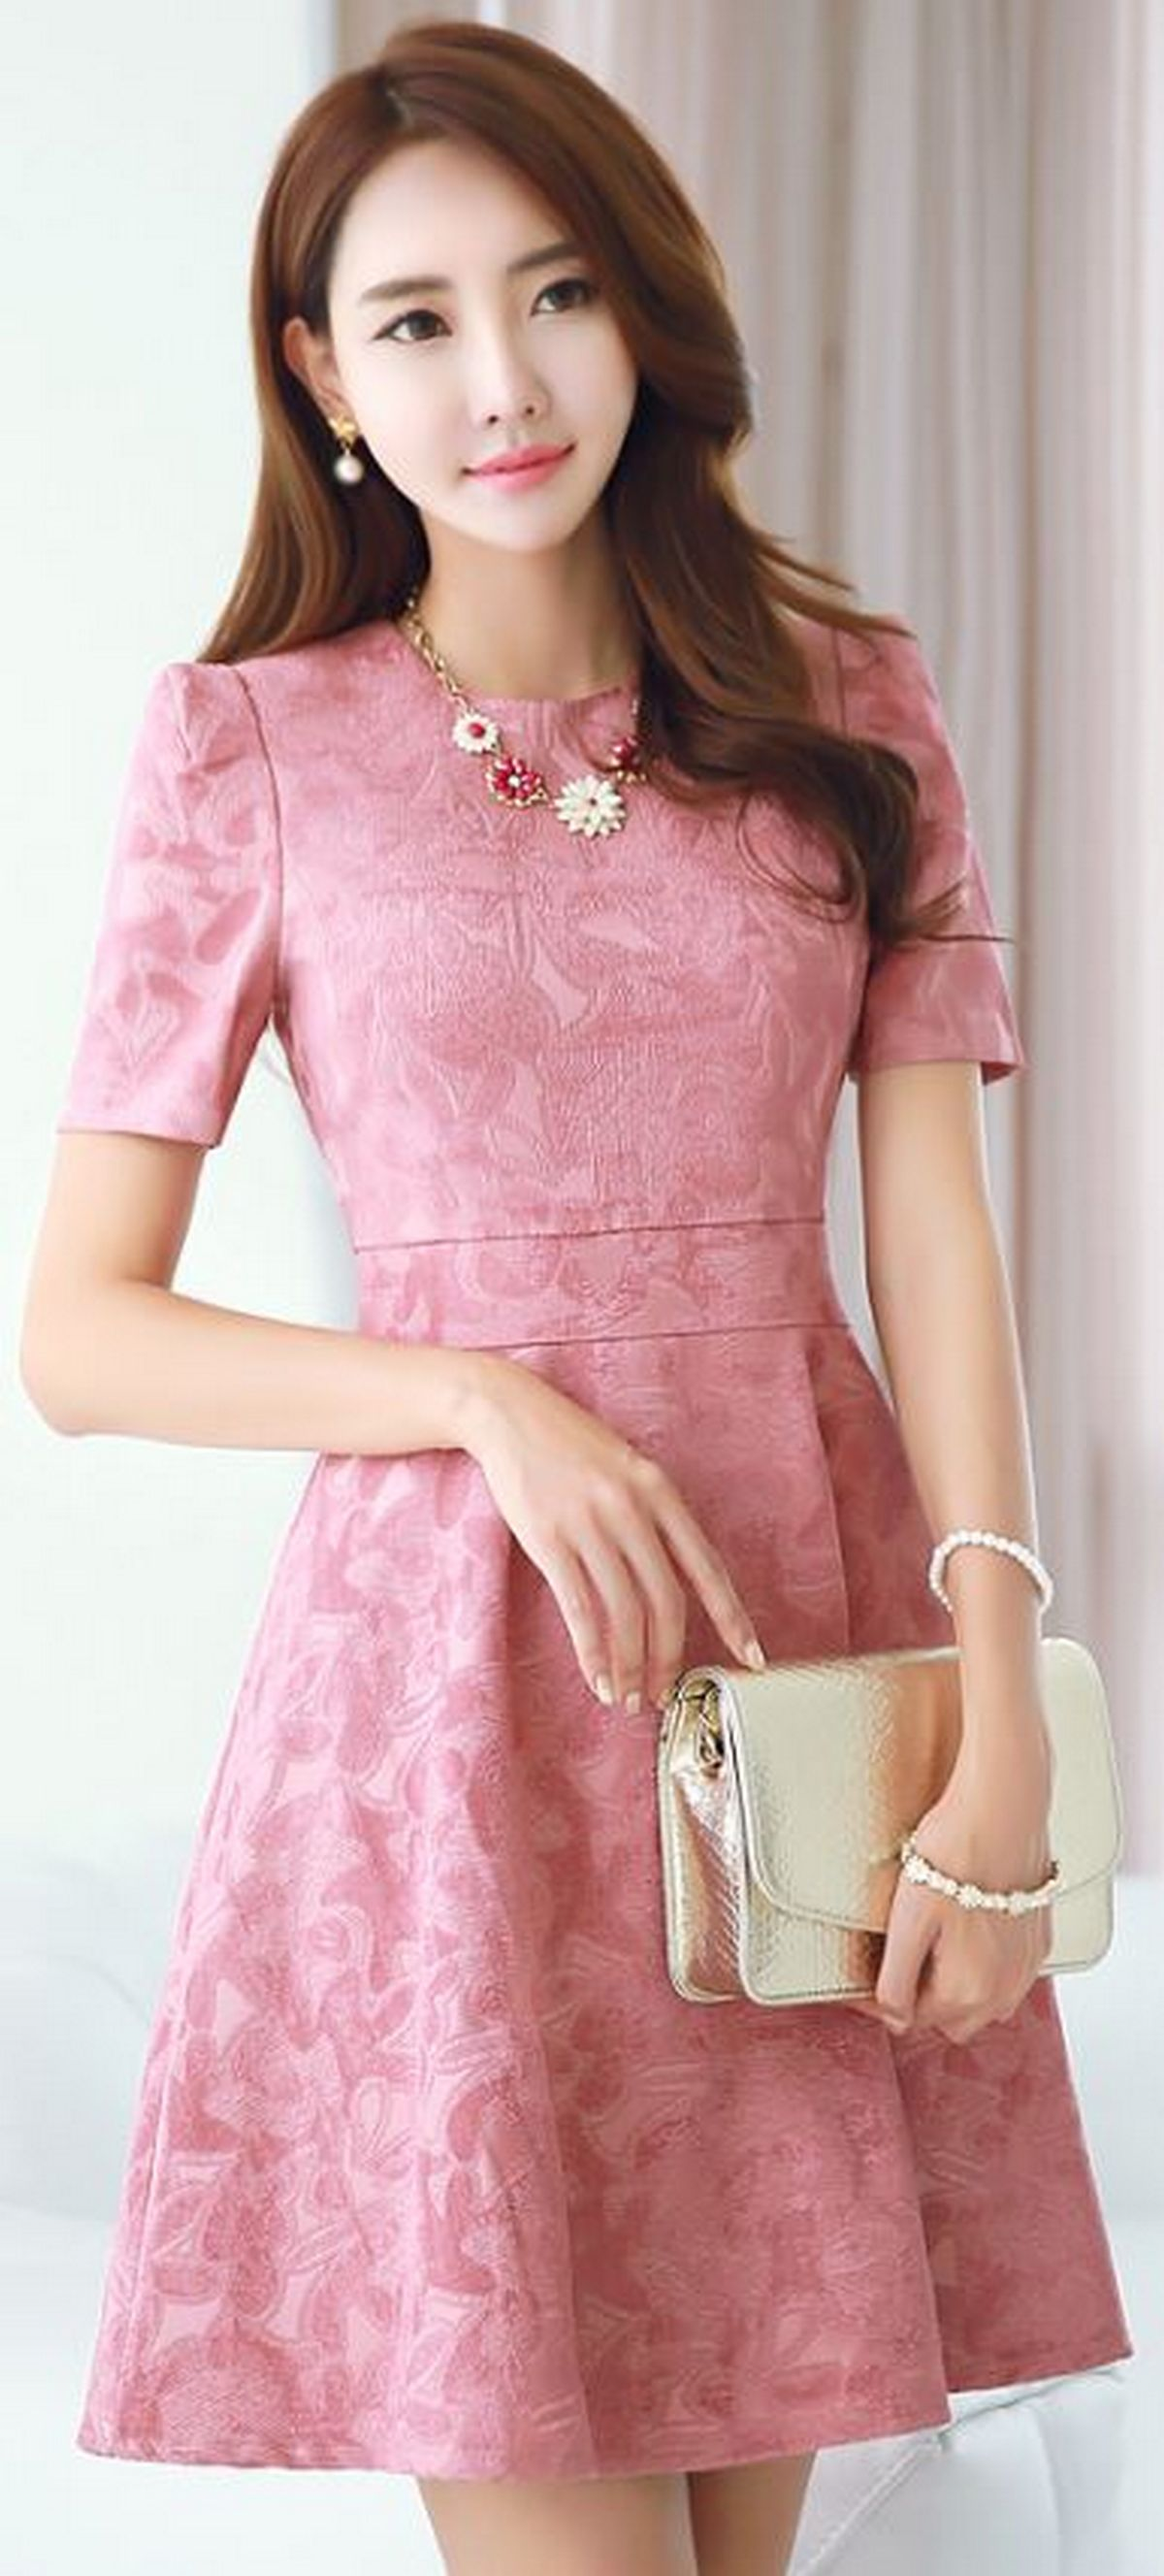 Pink sleeve dress idea for daily action 34 fashion